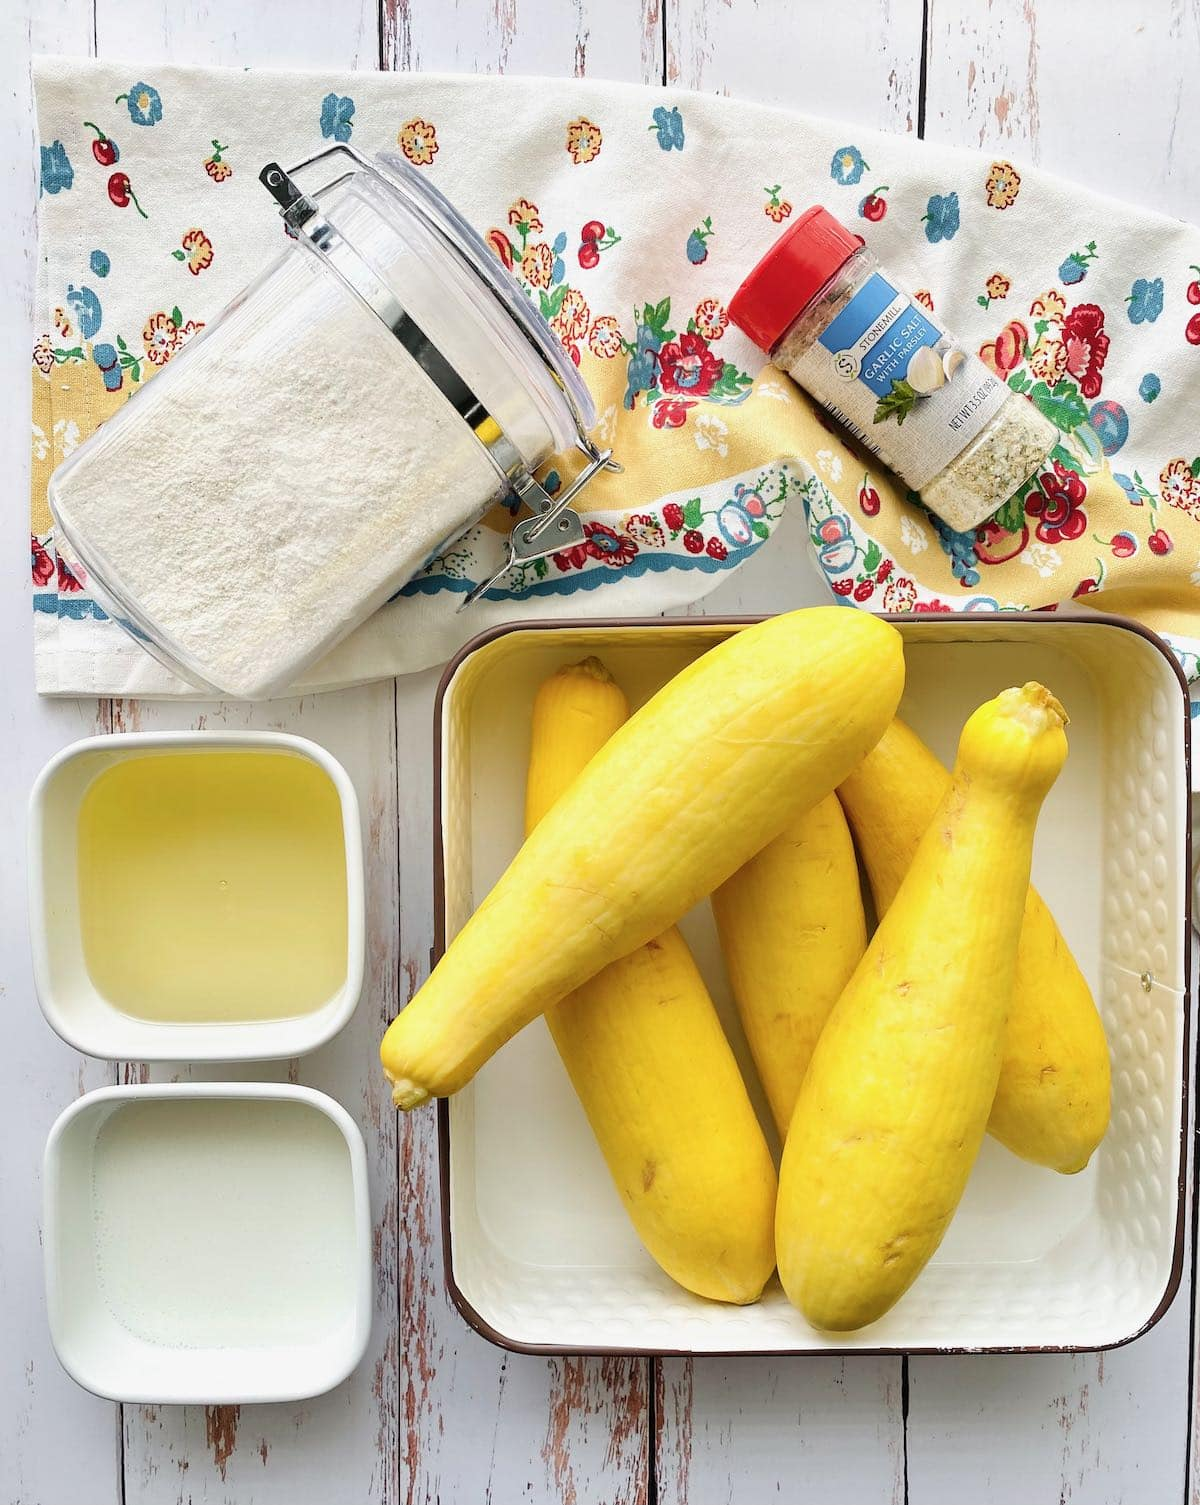 ingredients needed to make fried squash.